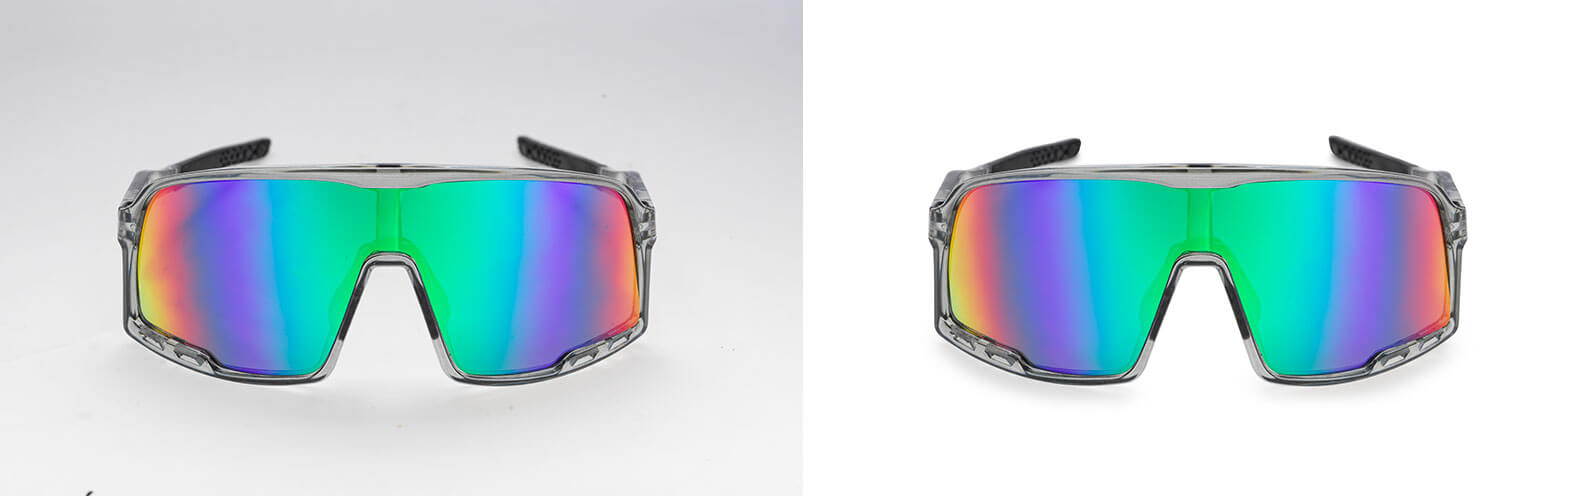 manual background removal service